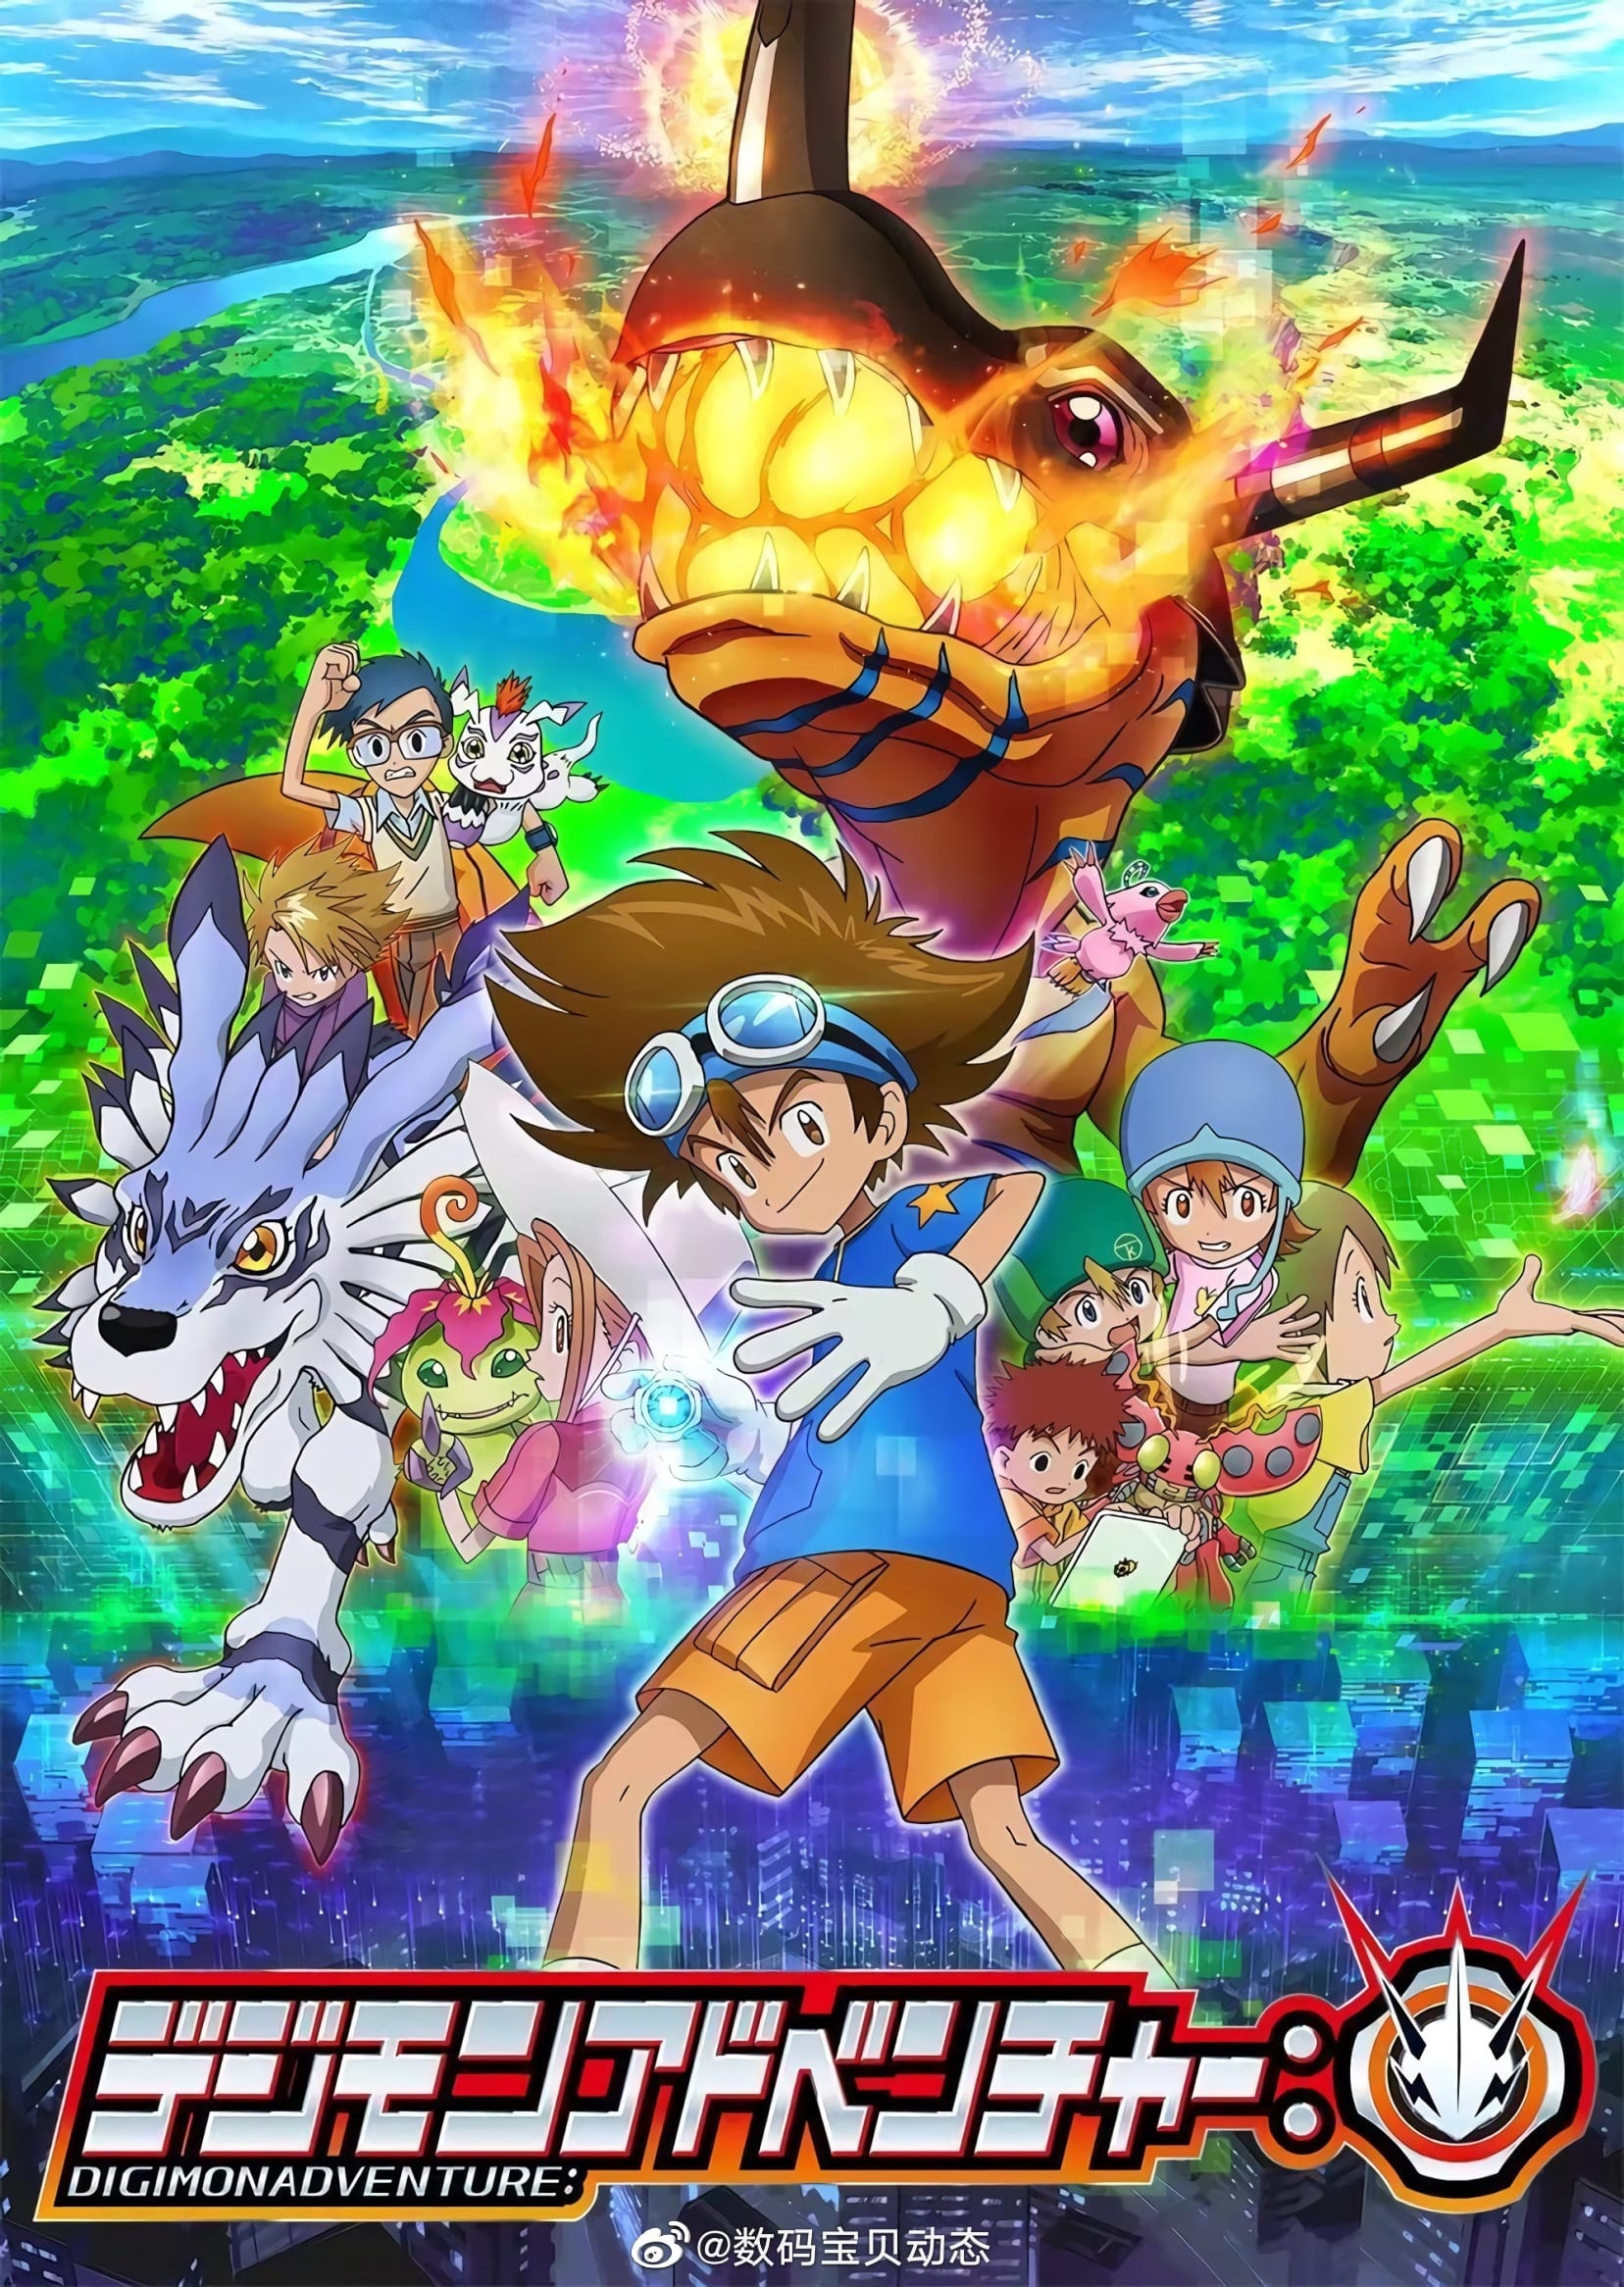 https://mirai.ai/wp-content/uploads/Digimon-Adventure-1.jpg